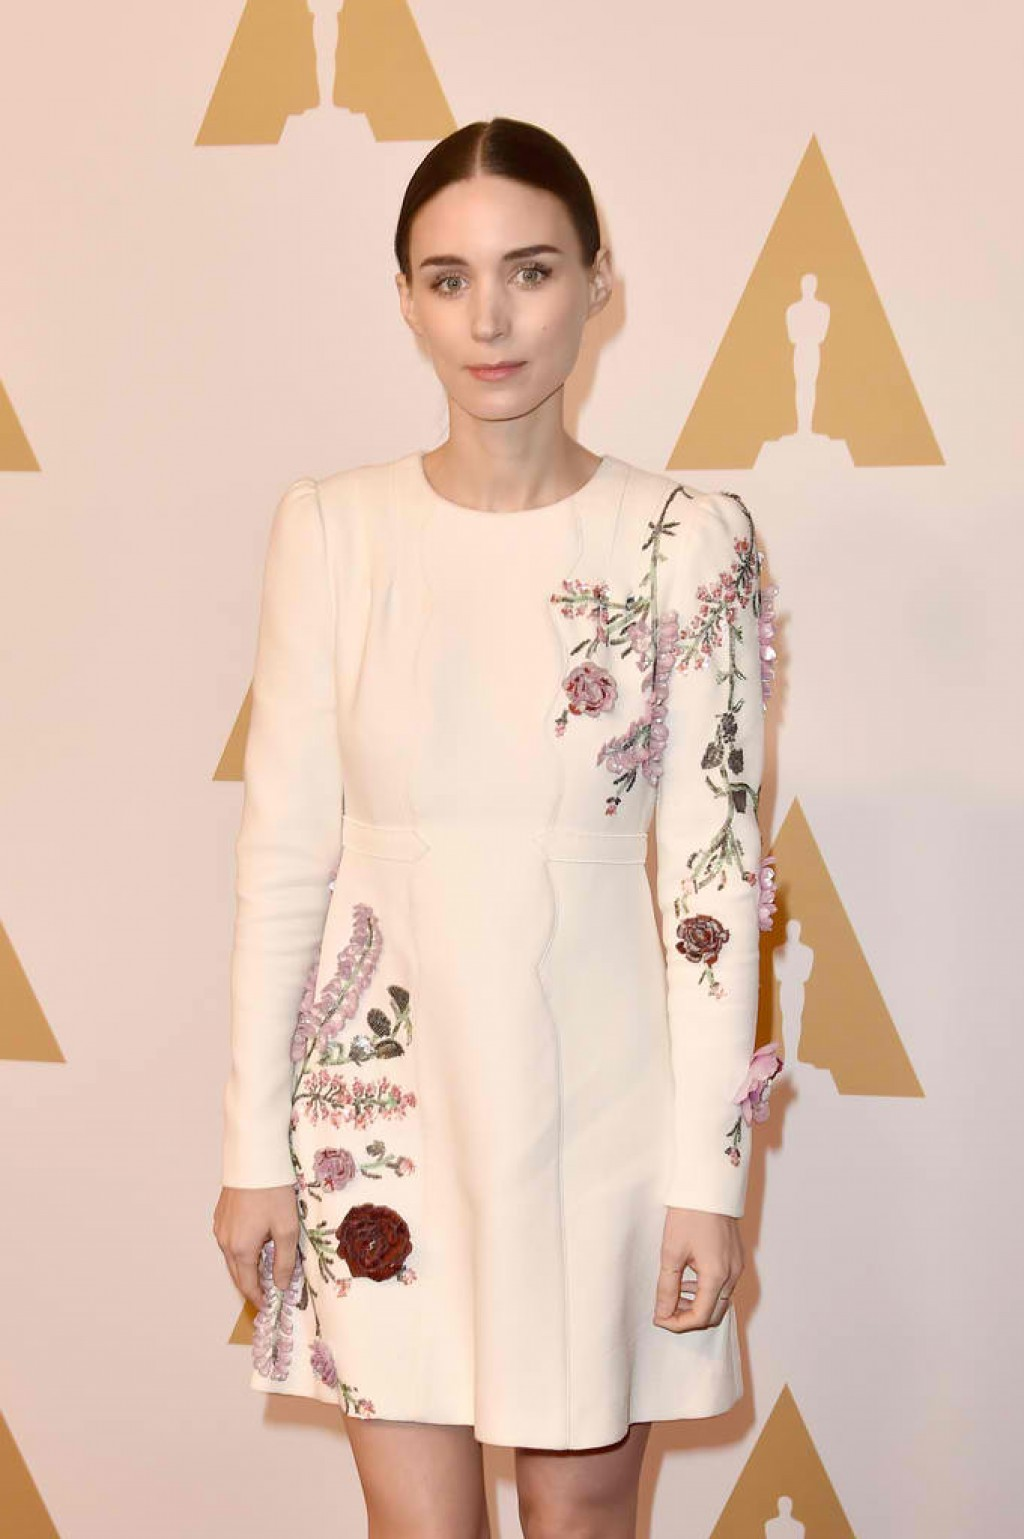 88th-Annual-Academy-Awards-Nominee-Luncheon-Rooney-Mara-Dress-1024x1539